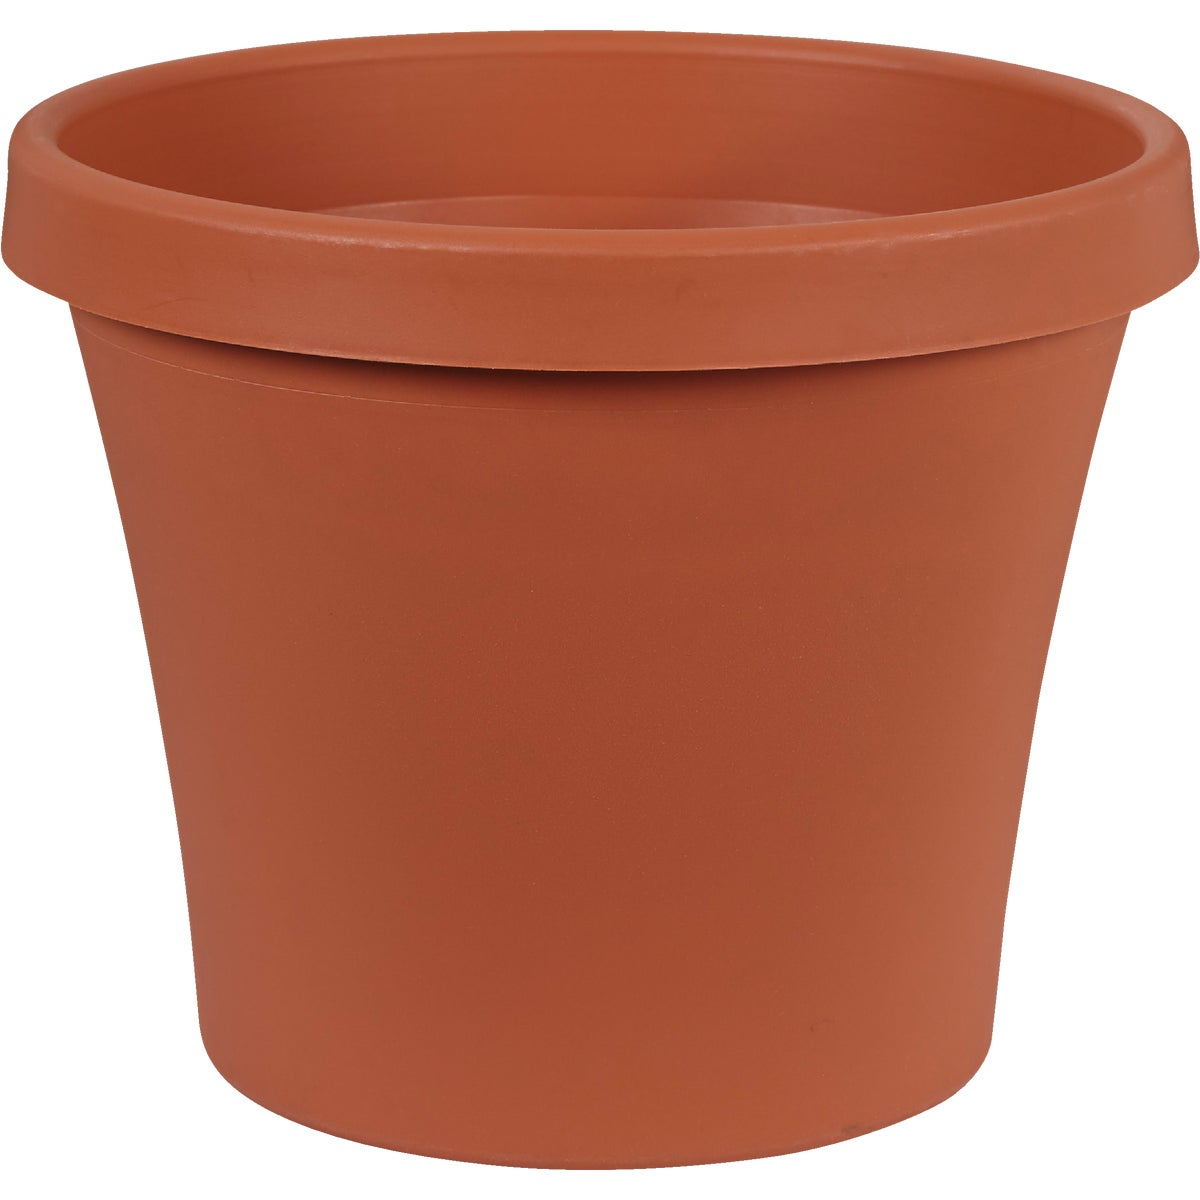 "16"" CLAY POLY POT - 50016C by Fiskars Brands Inc"